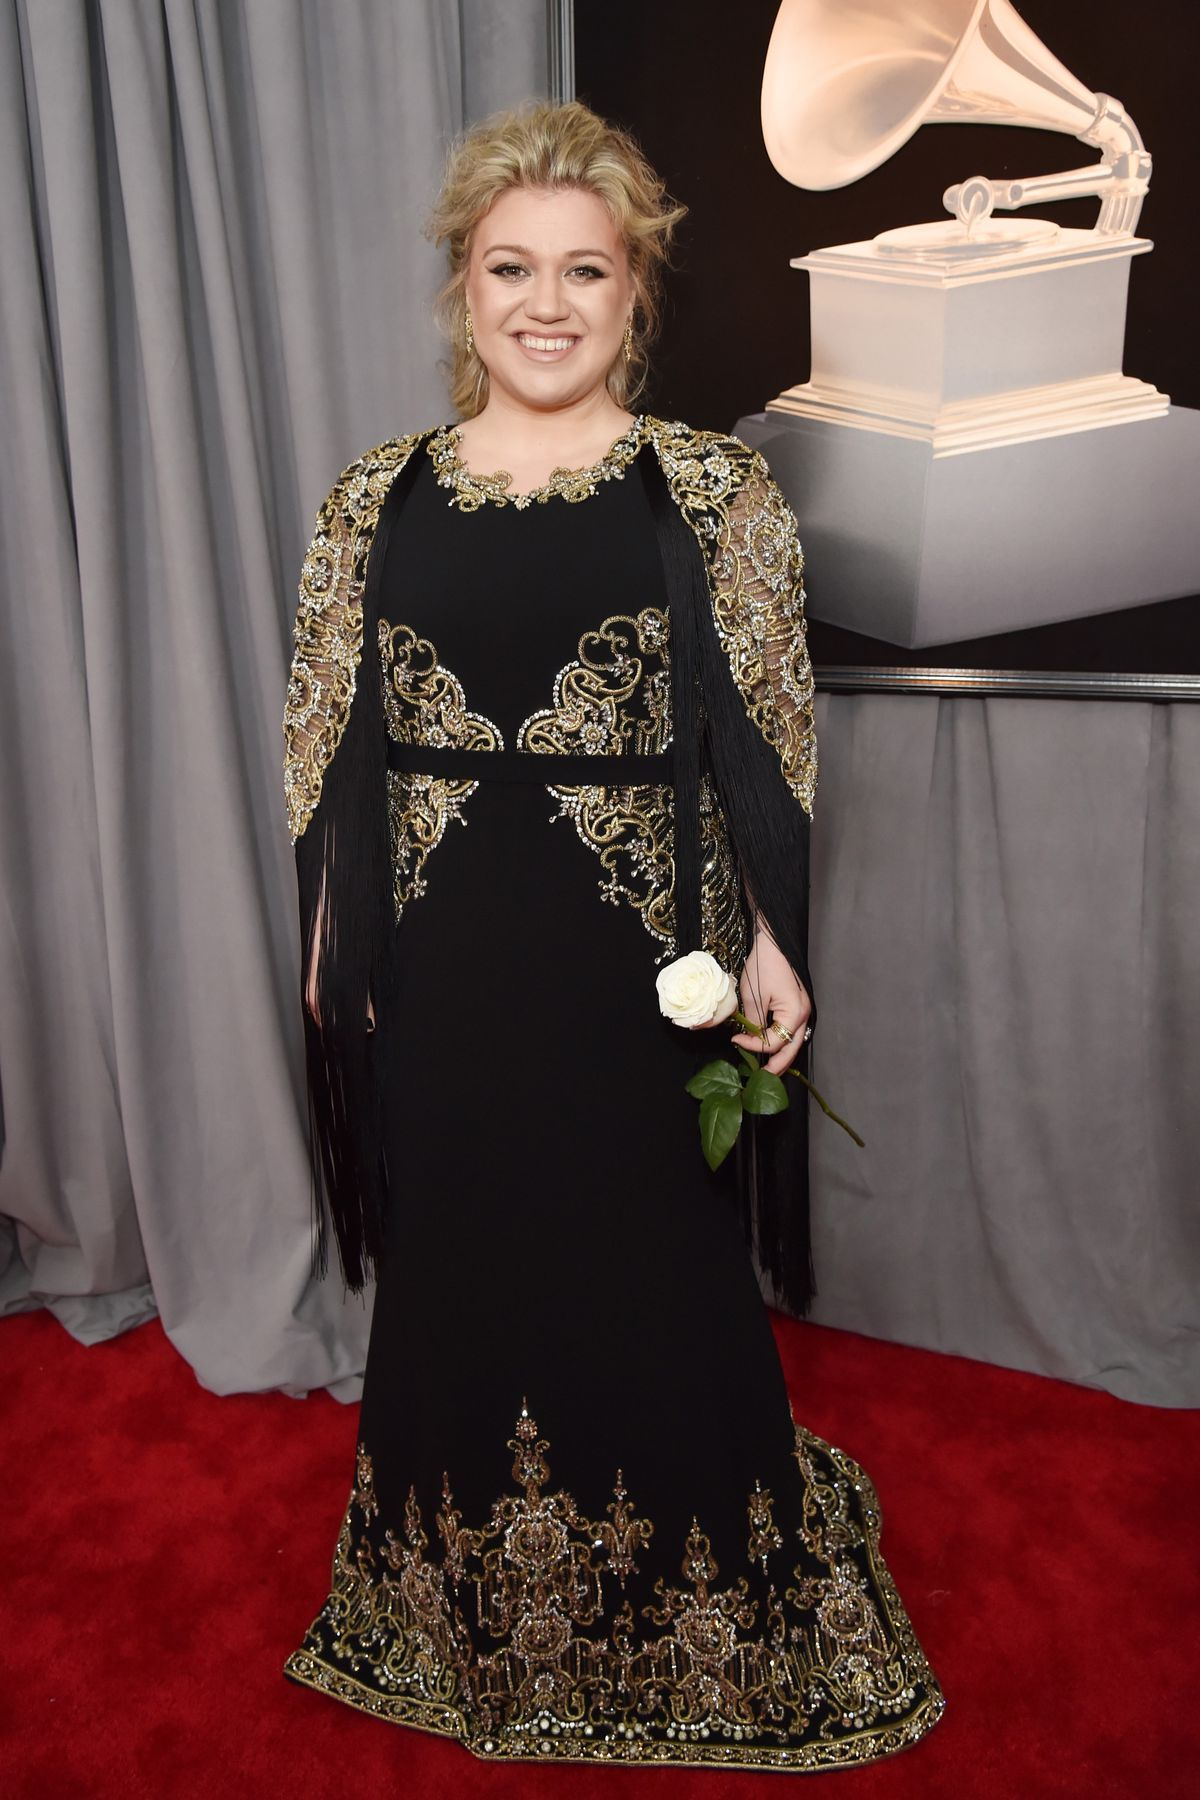 Kelly Clarkson wearing Christian Siriano and carrying her white rose at the 2018 Grammys.